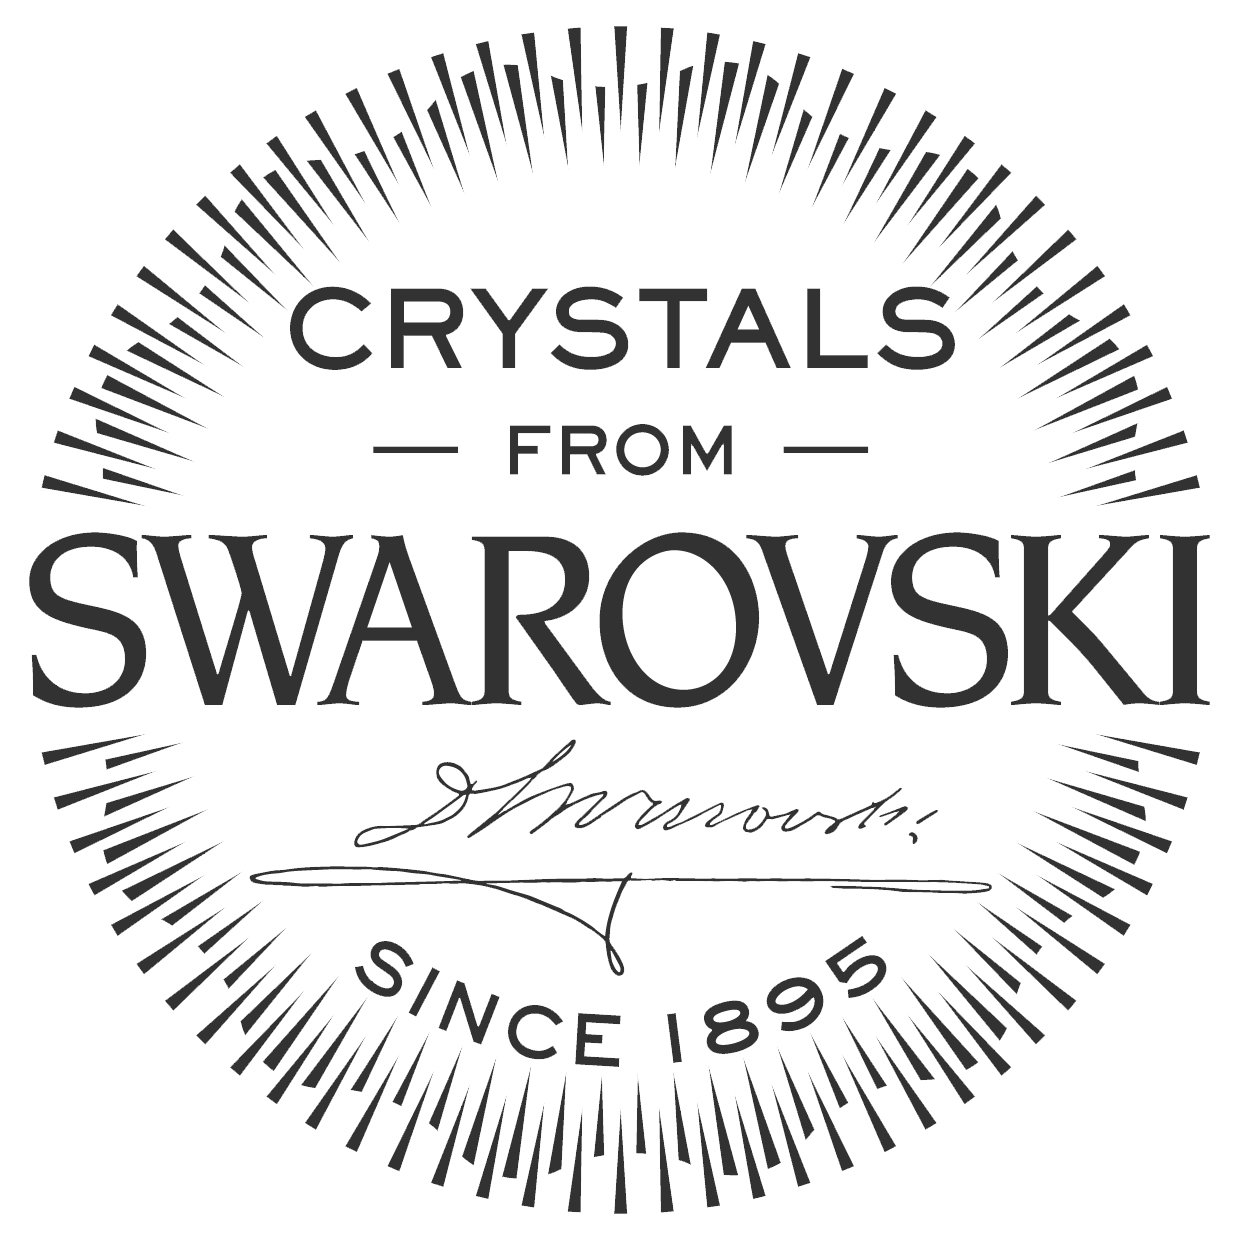 Crystal Zone Swarovski Authorized Wholesaler, Certificate